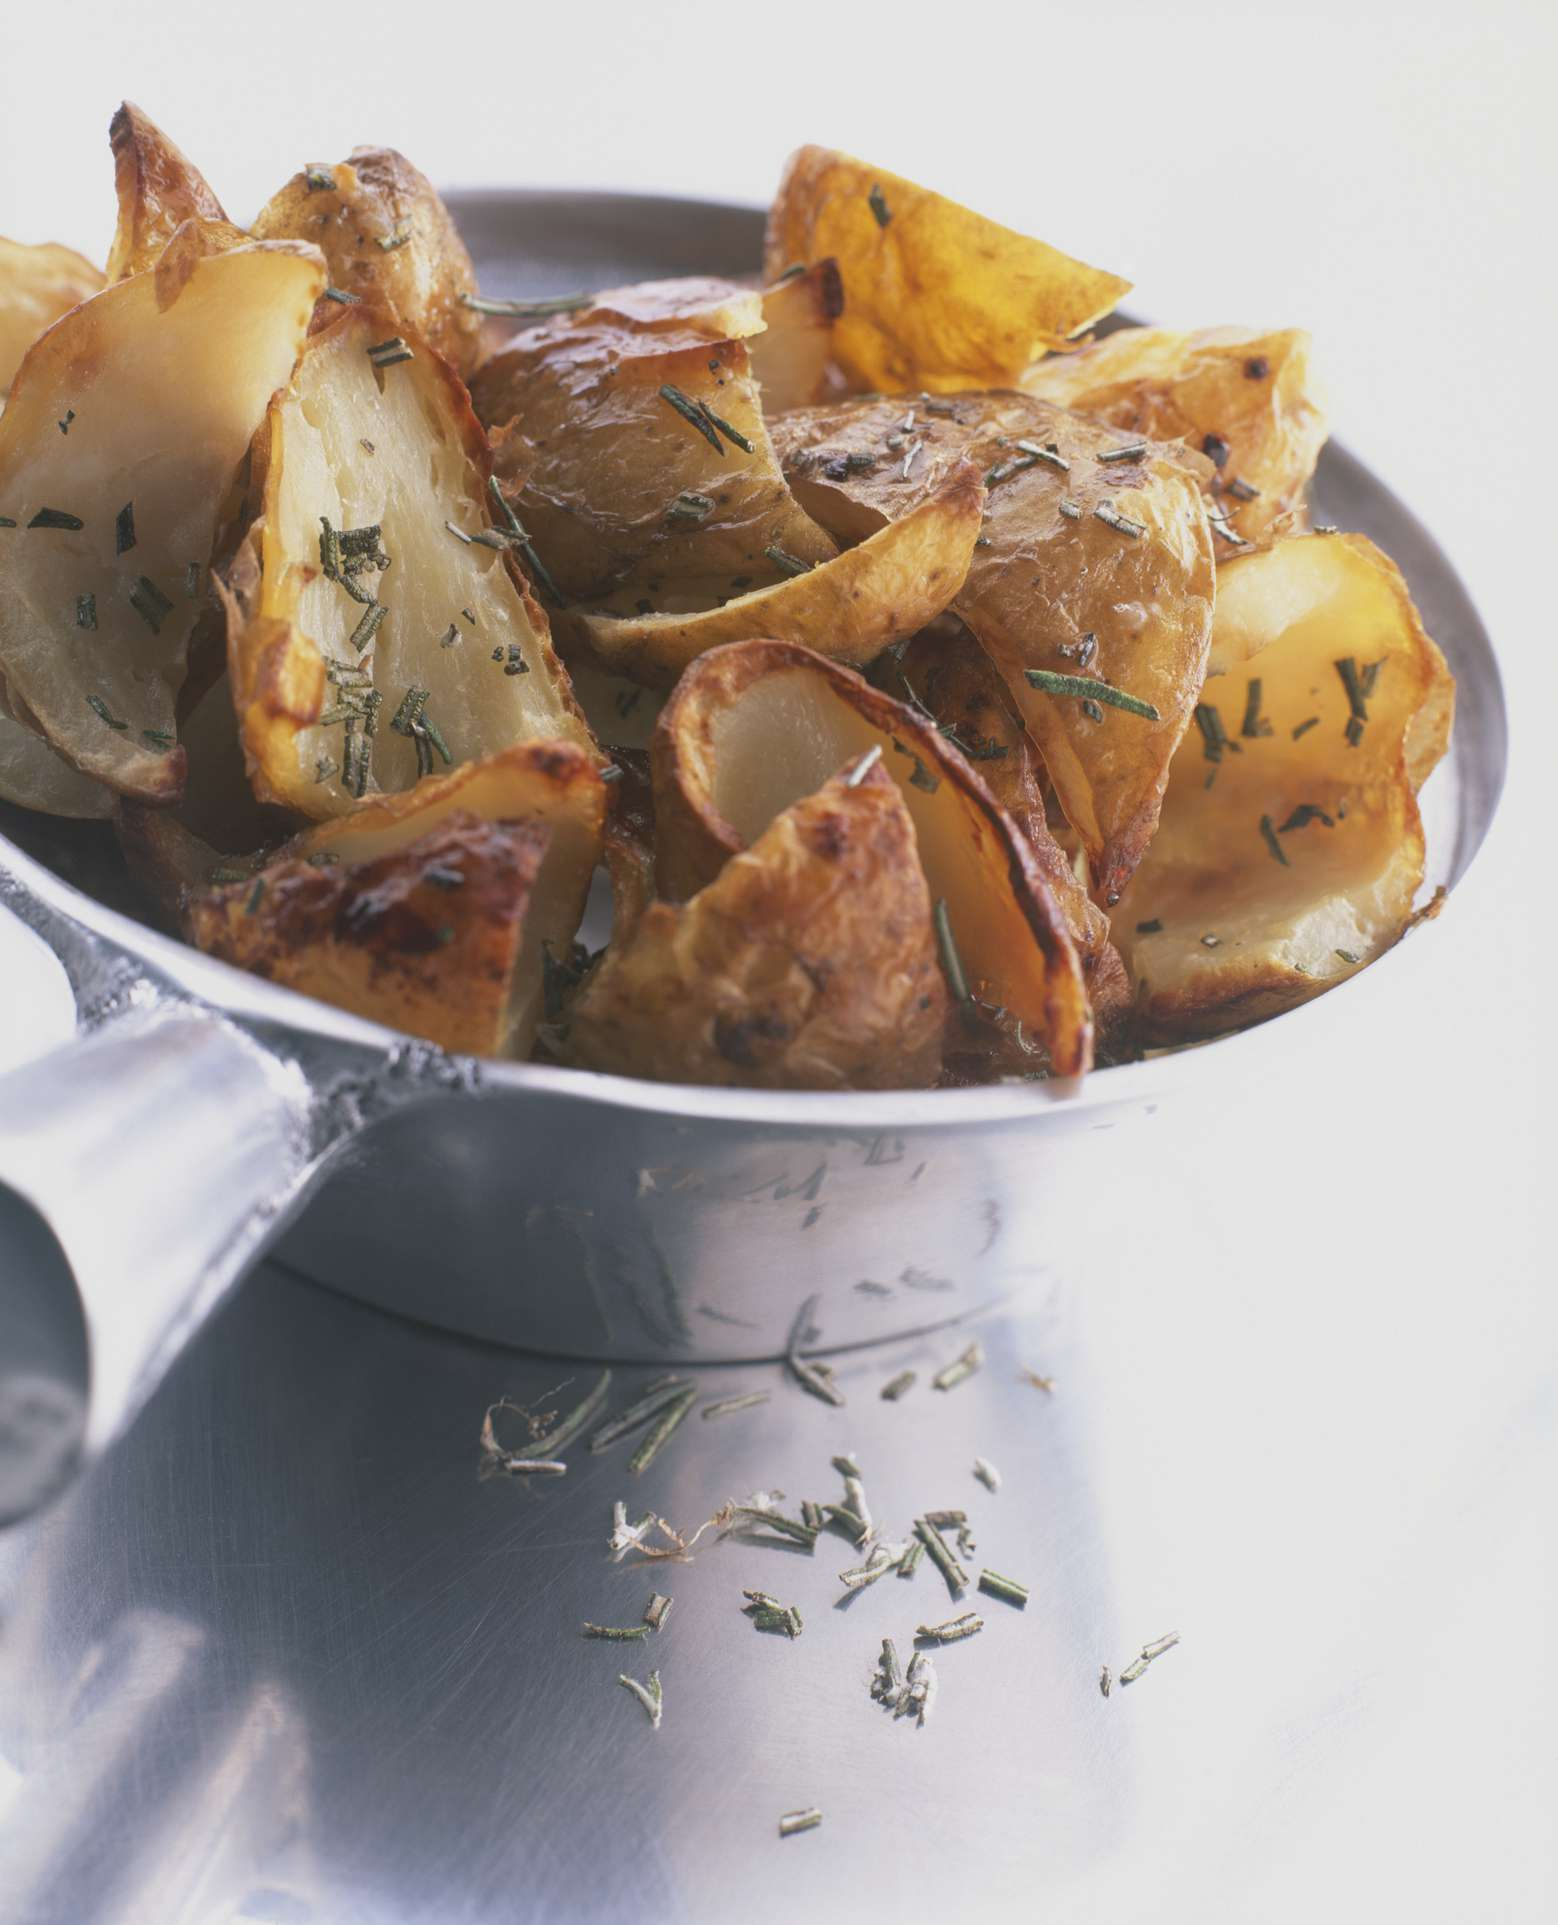 Crispy potato skins sprinkled with rosemary, served in a pan, close-up